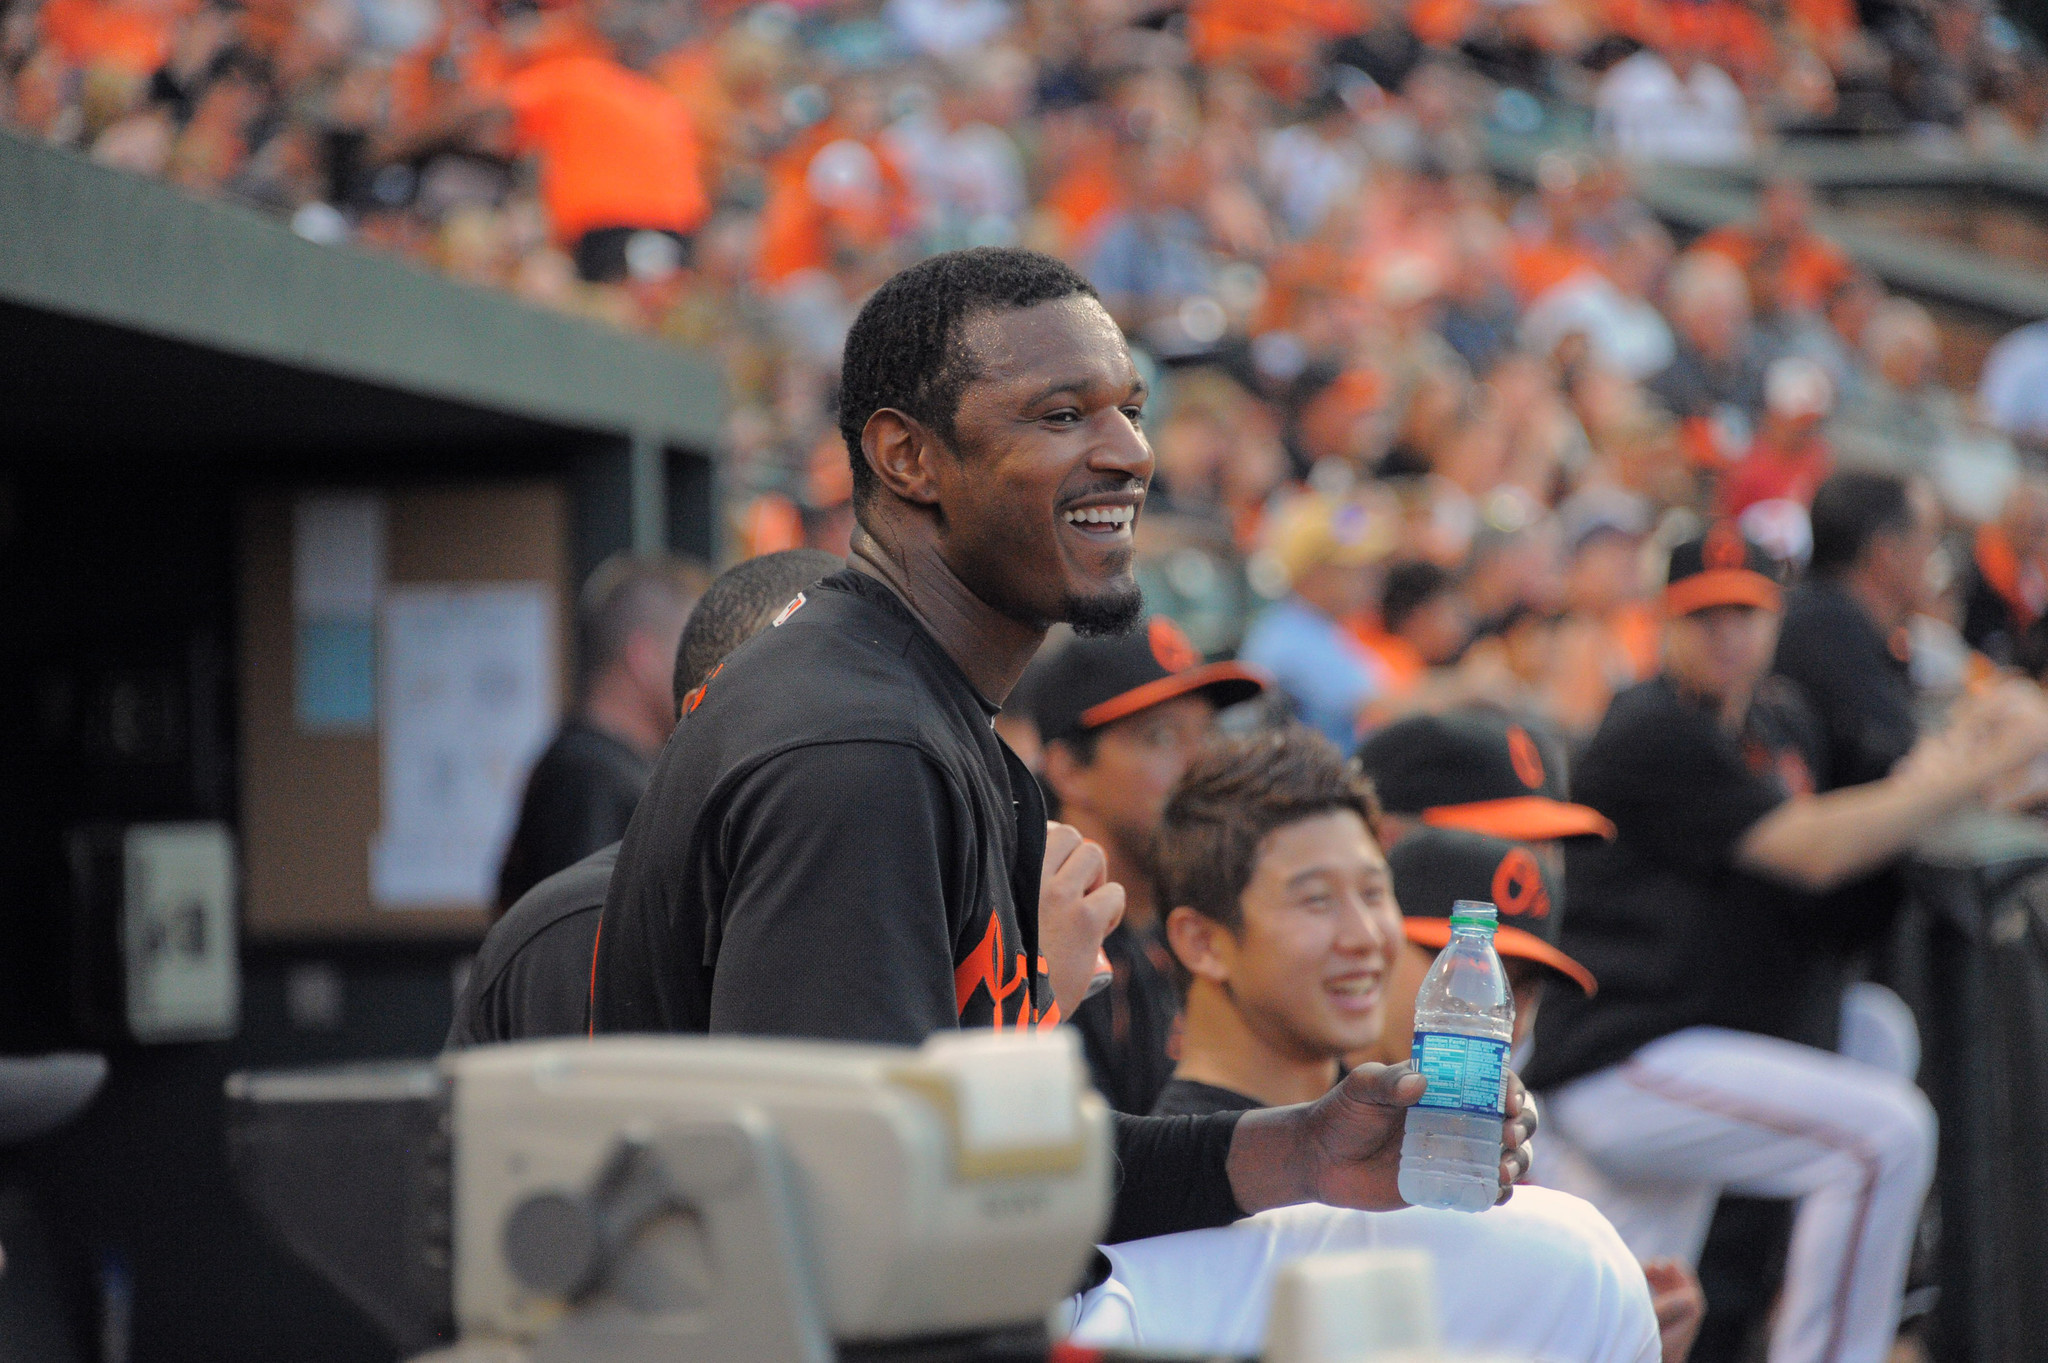 Bal-adam-jones-won-t-lead-off-for-the-orioles-next-year-but-best-solution-could-still-come-from-within-20161007